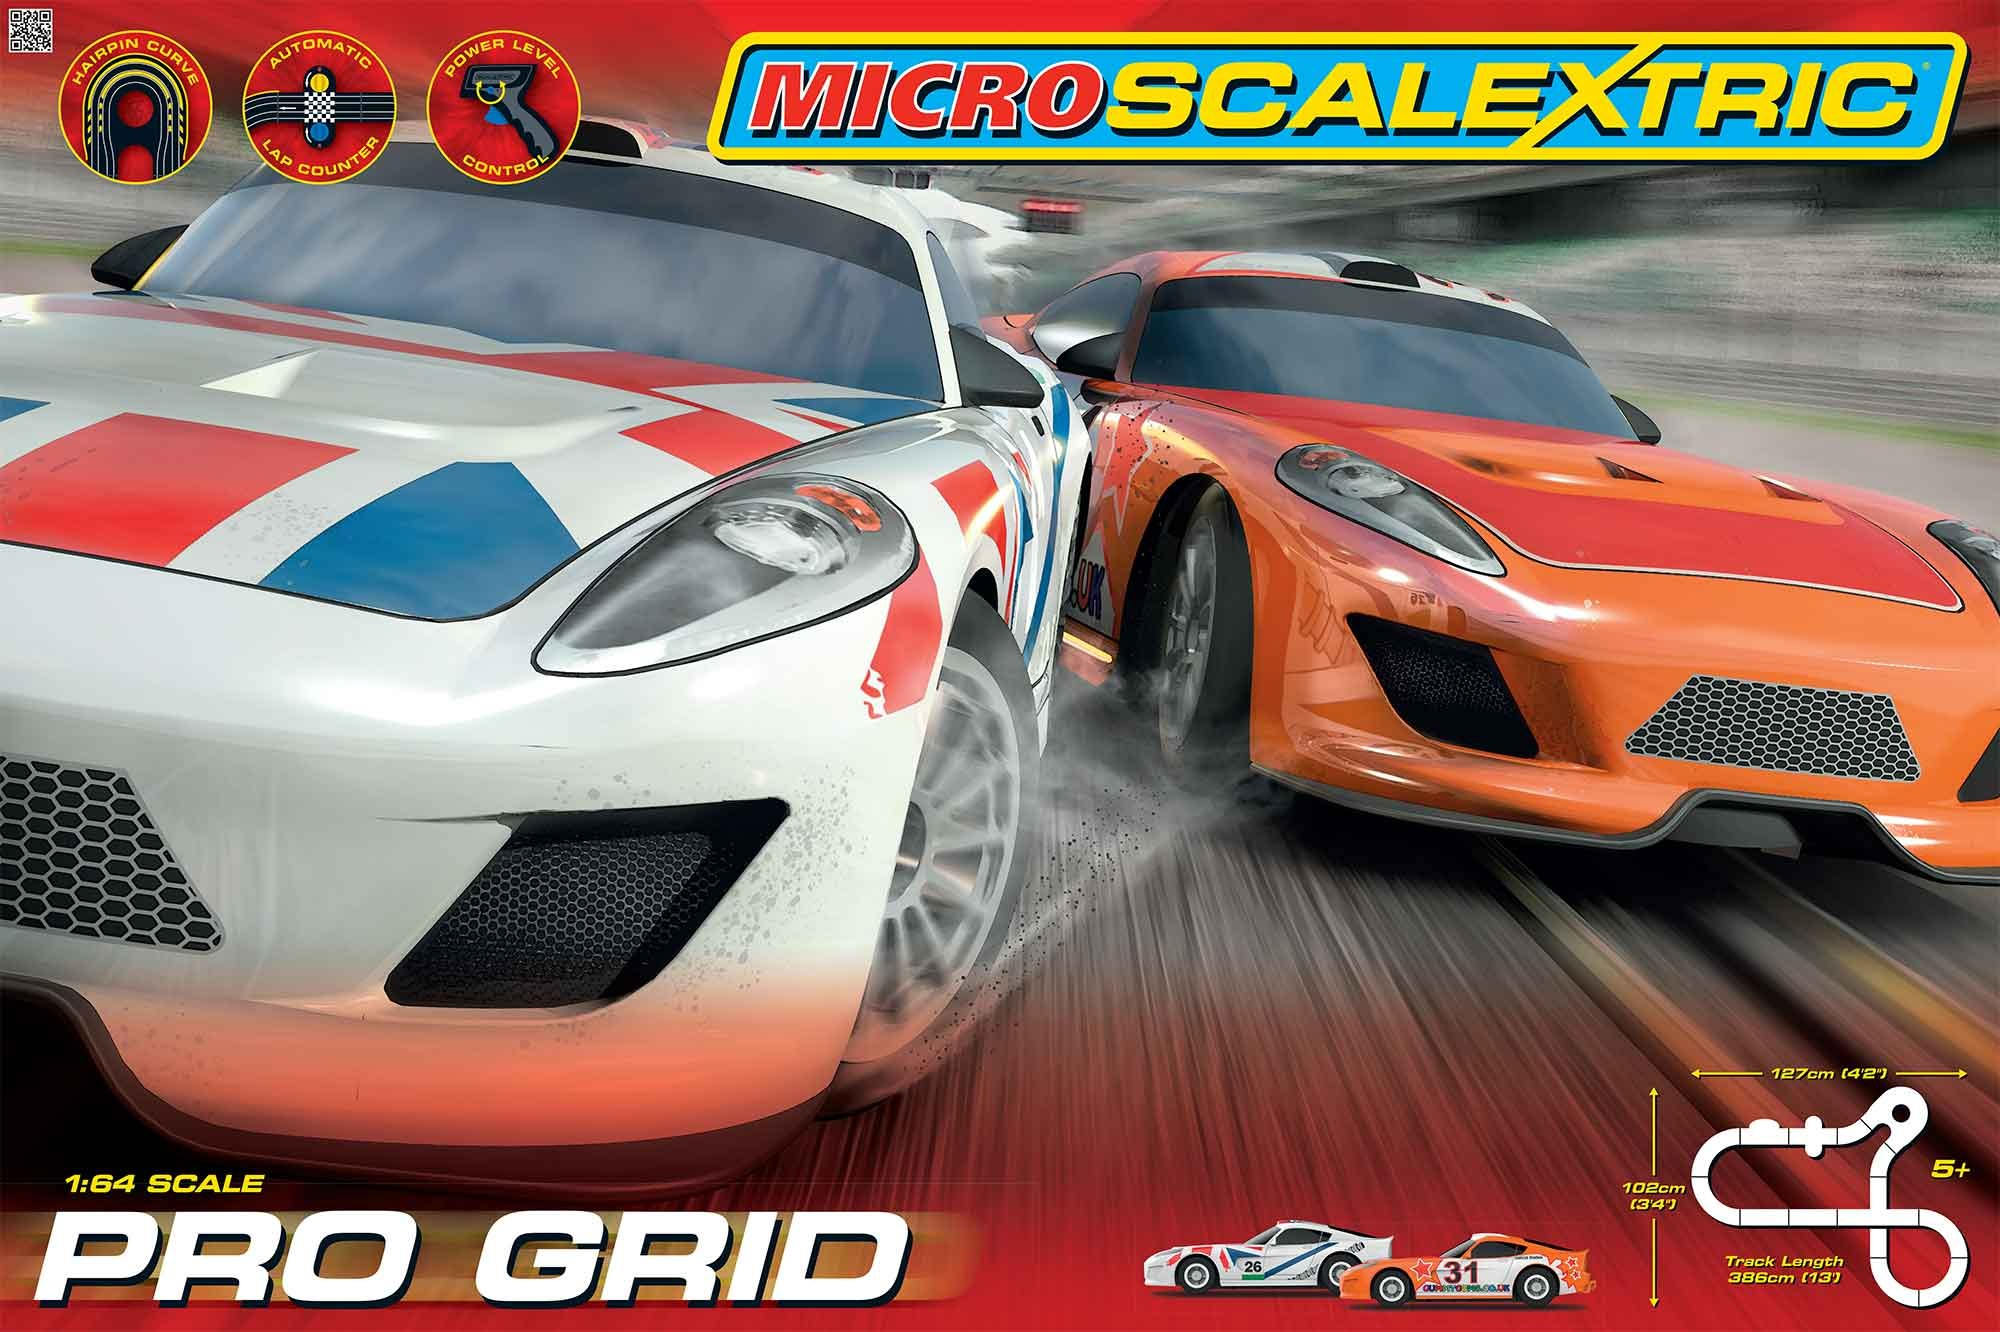 Micro scalextric new set released and read about 20 years of history new micro publicscrutiny